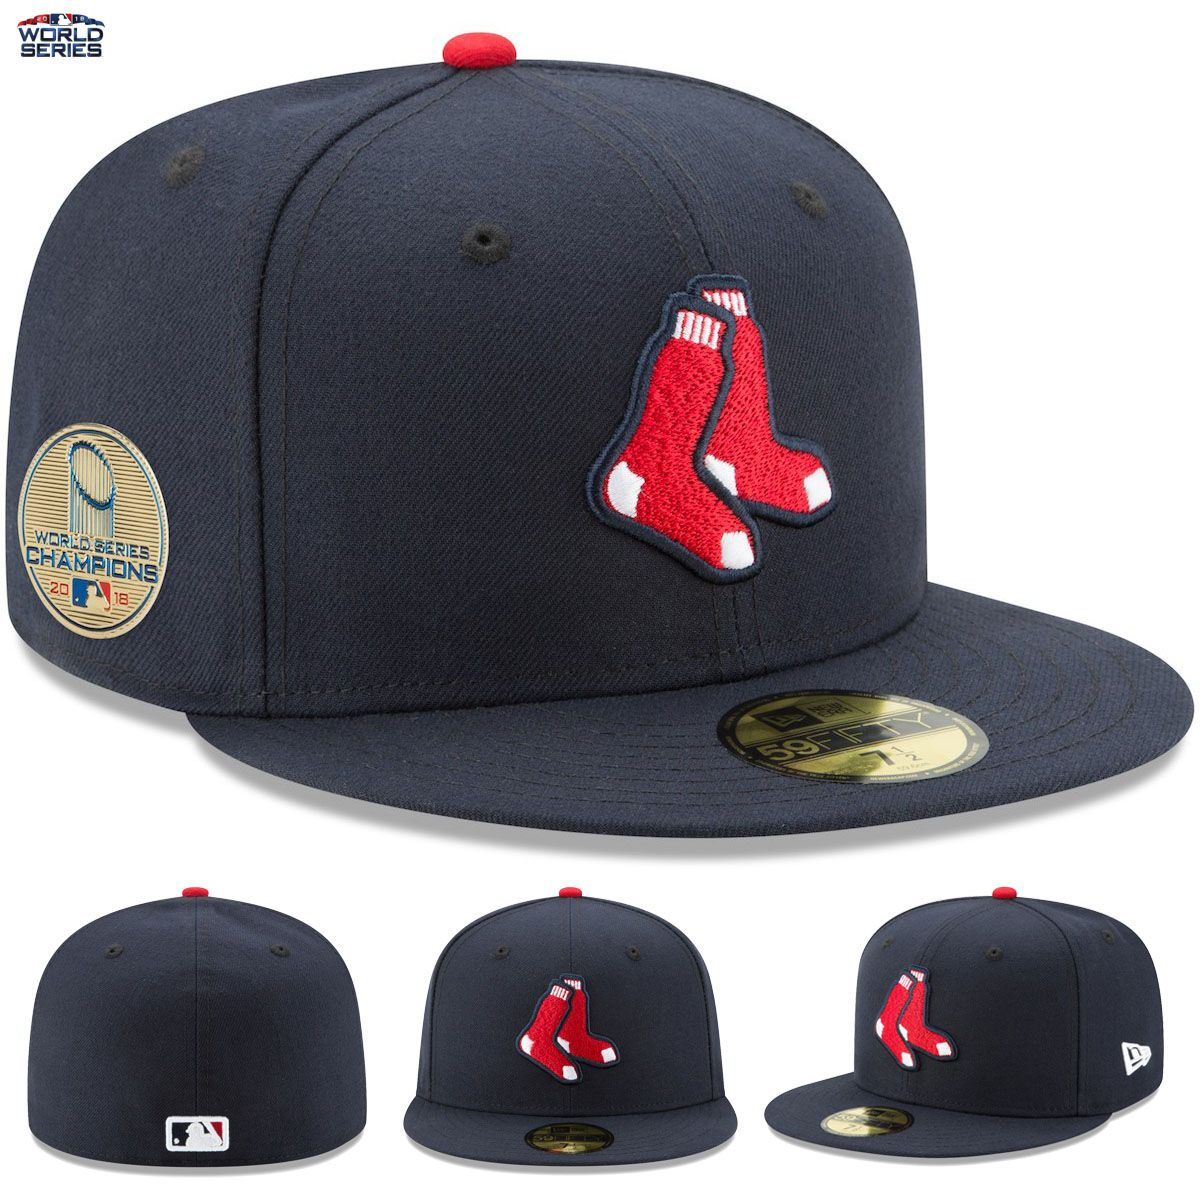 a719eae0ed9ae Boston Red Sox New Era 2018 World Series Champions 59FIFTY Fitted Hat Cap  Patch THEY HAVE DONE IT!! Your Boston Red Sox are 2018 World Series  Champions